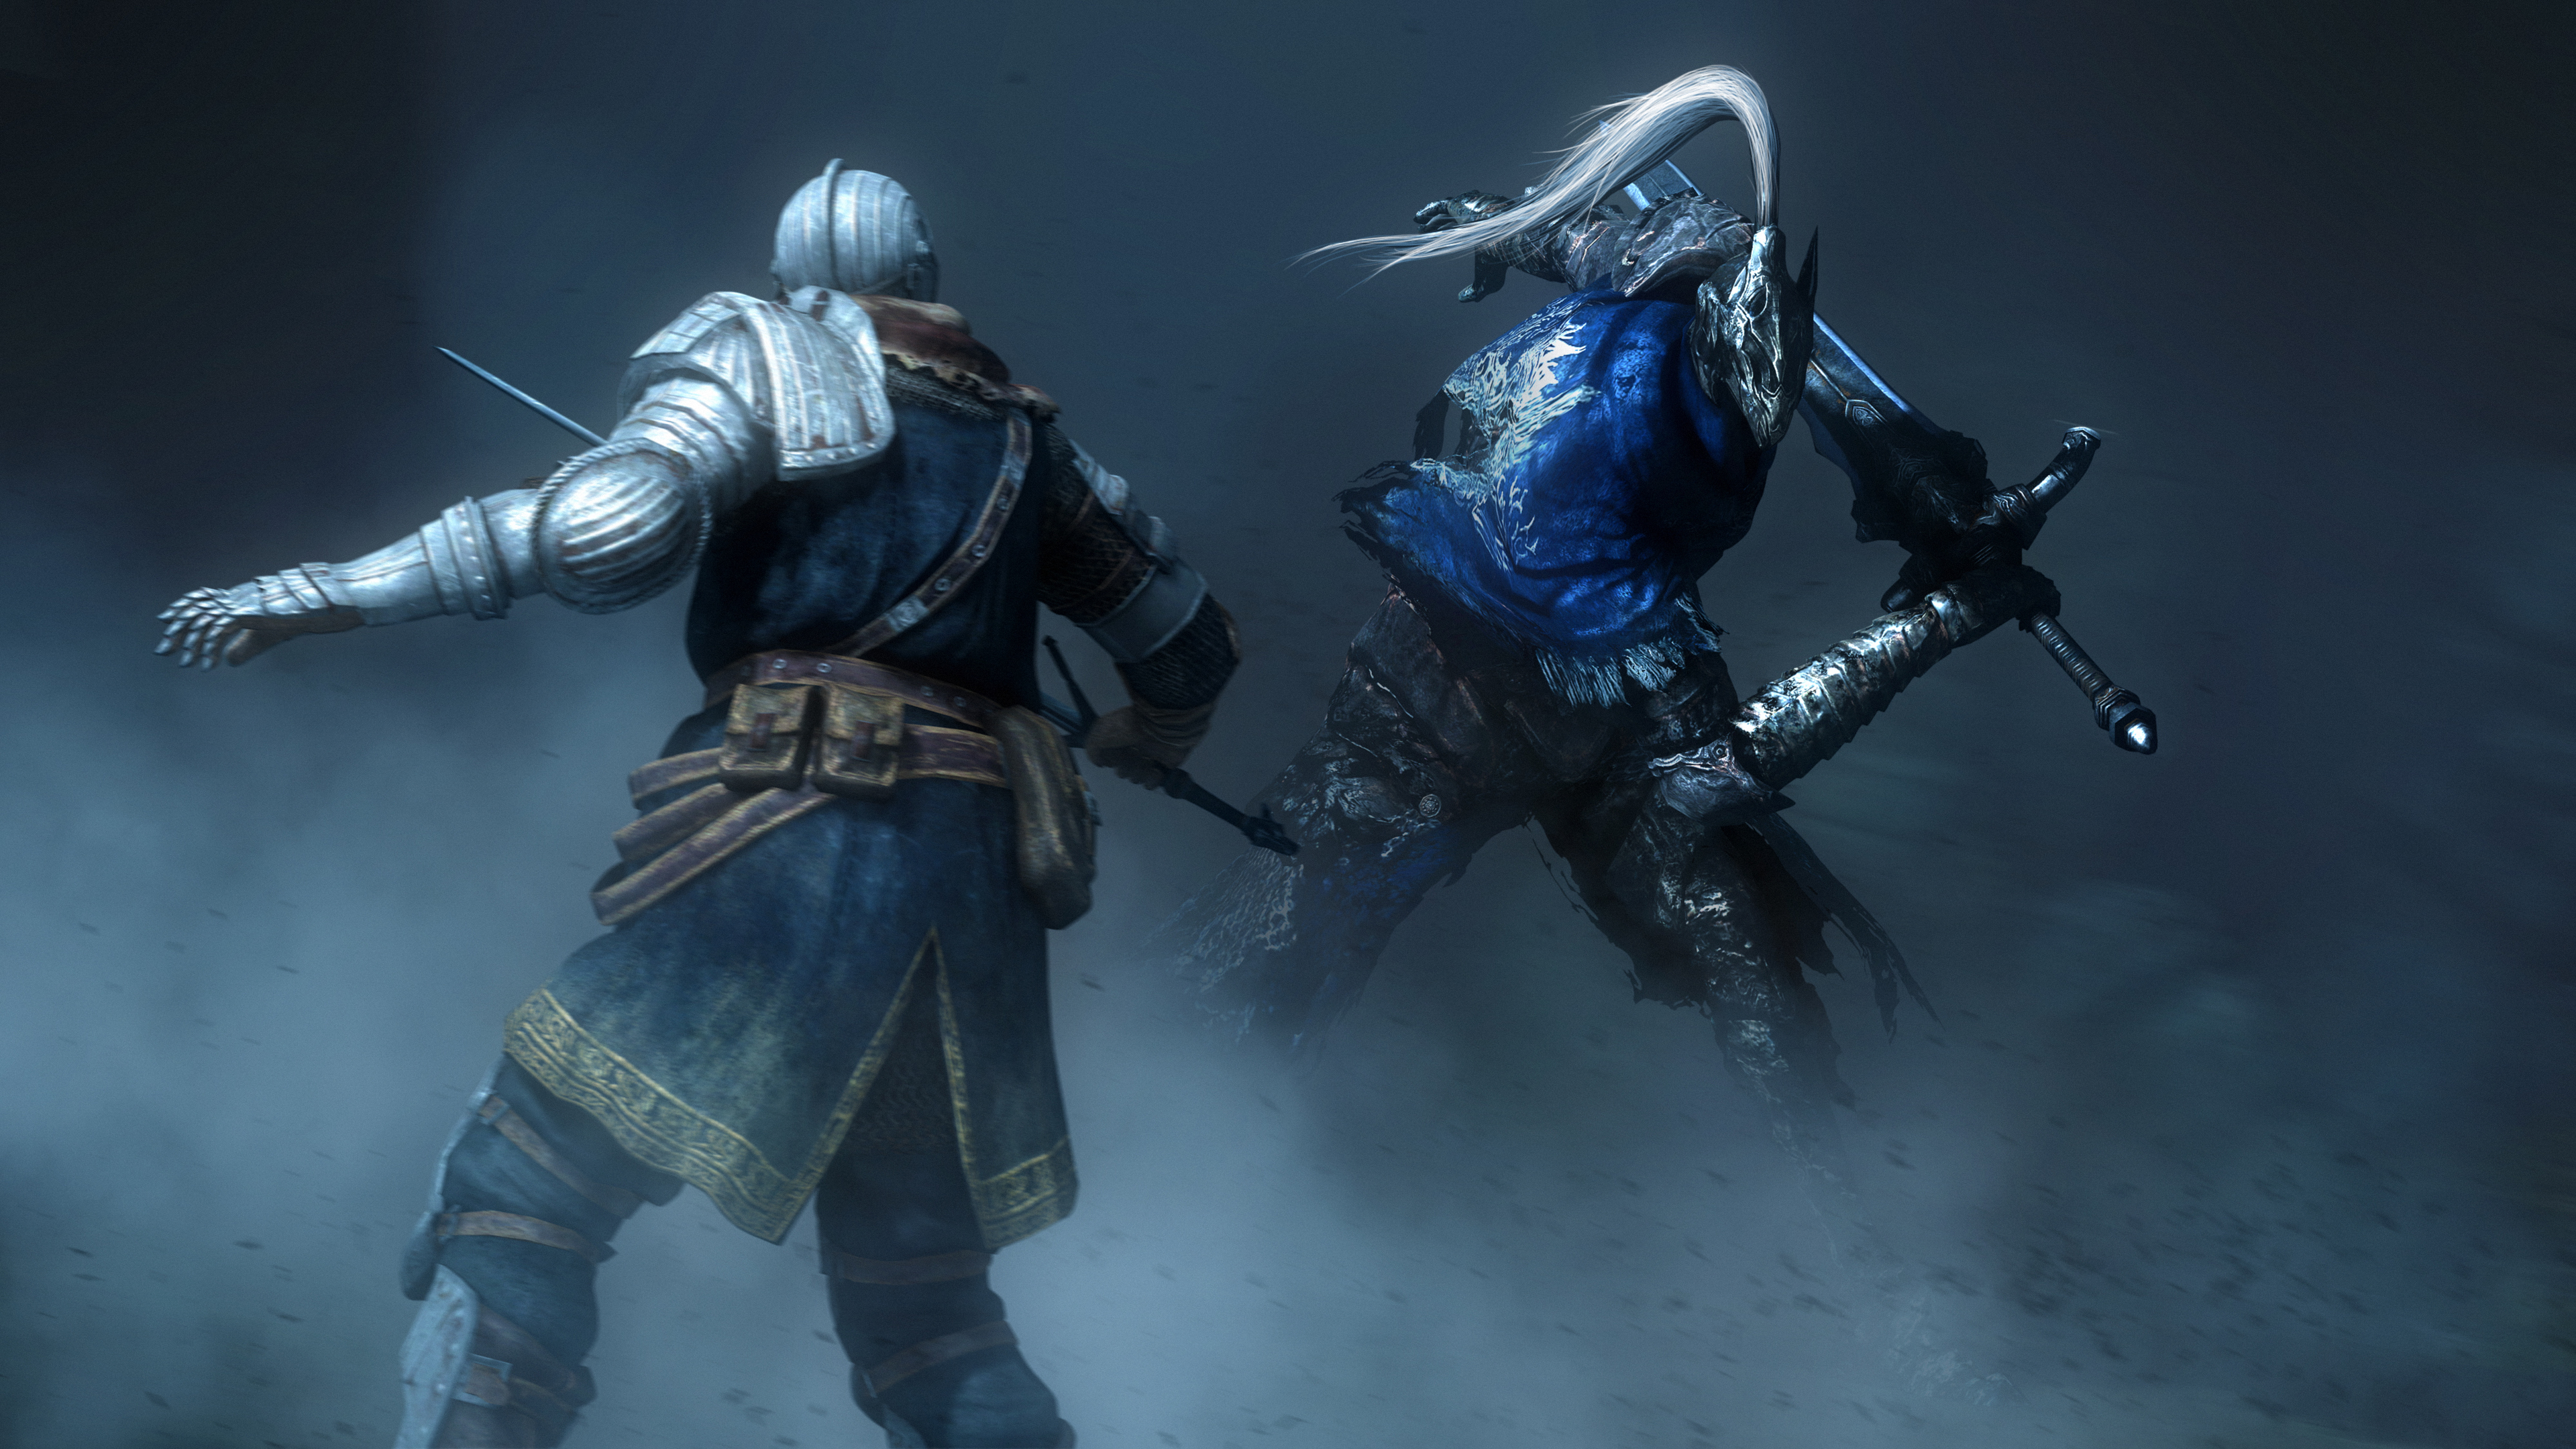 knight artorias squaring off against another knight 4k 1540755163 - Knight Artorias Squaring Off Against Another Knight 4k - hd-wallpapers, digital art wallpapers, deviantart wallpapers, artwork wallpapers, artist wallpapers, 4k-wallpapers